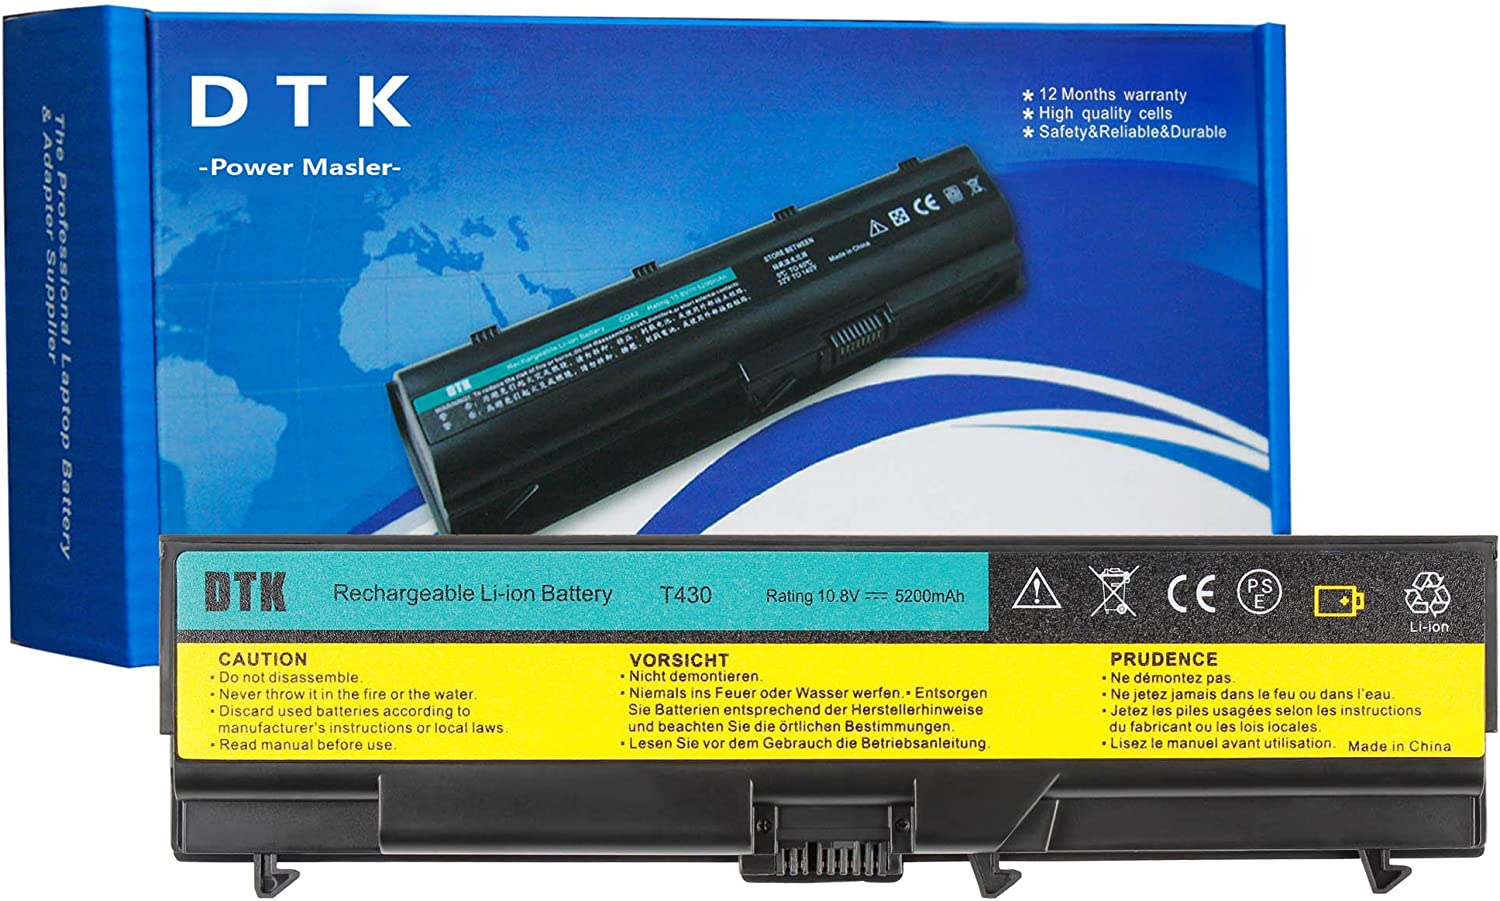 Dtk New Laptop Battery Replacement for Lenovo IBM Thinkpad W530 / W530i / L430 / L530 / T430 / T430i T530 / T530i Serieslaptop Battery (0a36303 70+)